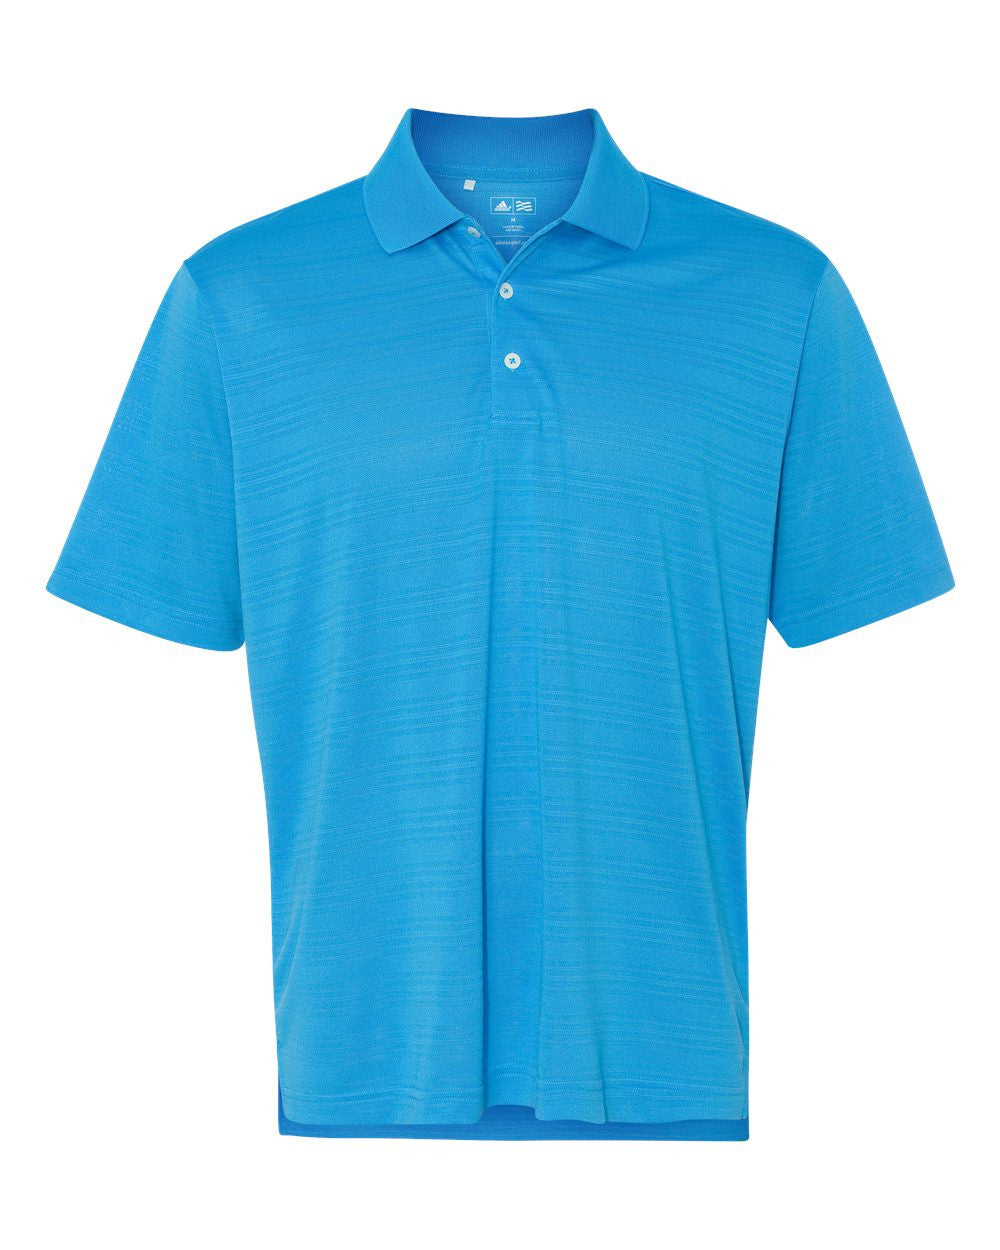 Performance Texture Polo for Men by Adidas